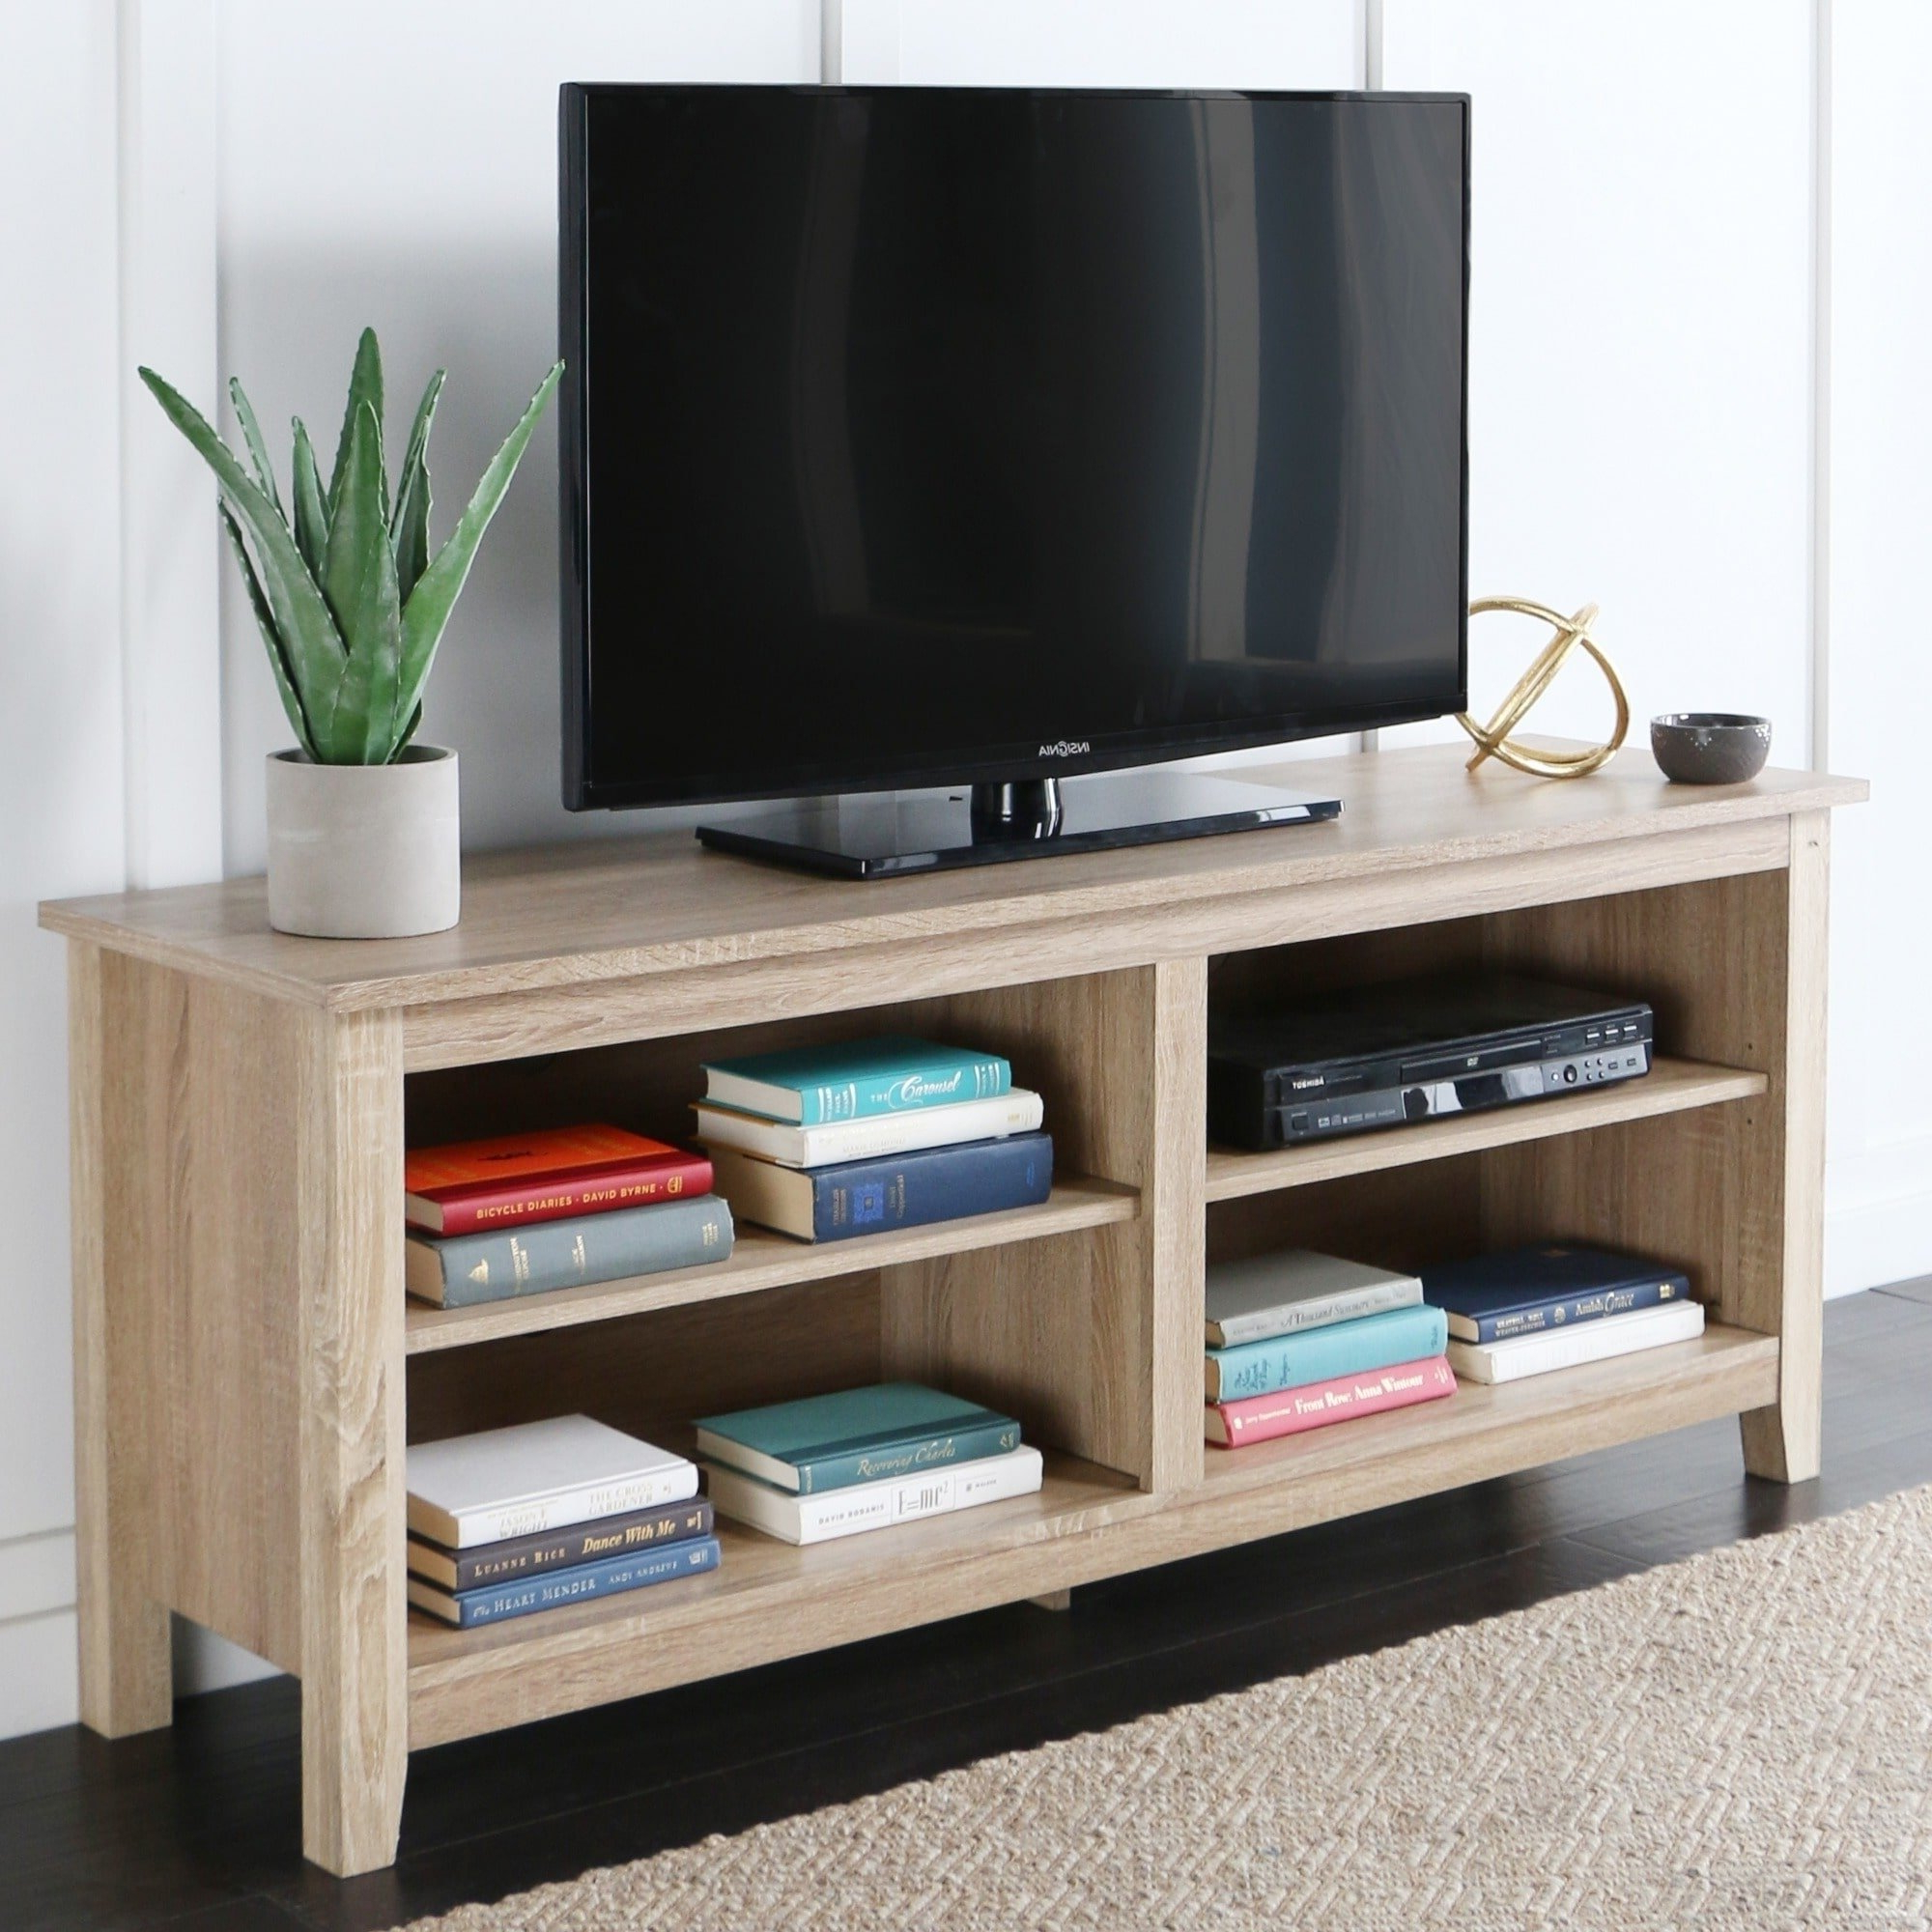 Wood Tv Stands Pertaining To Latest Shop 58 Inch Natural Wood Tv Stand – Free Shipping On Orders Over (View 20 of 20)